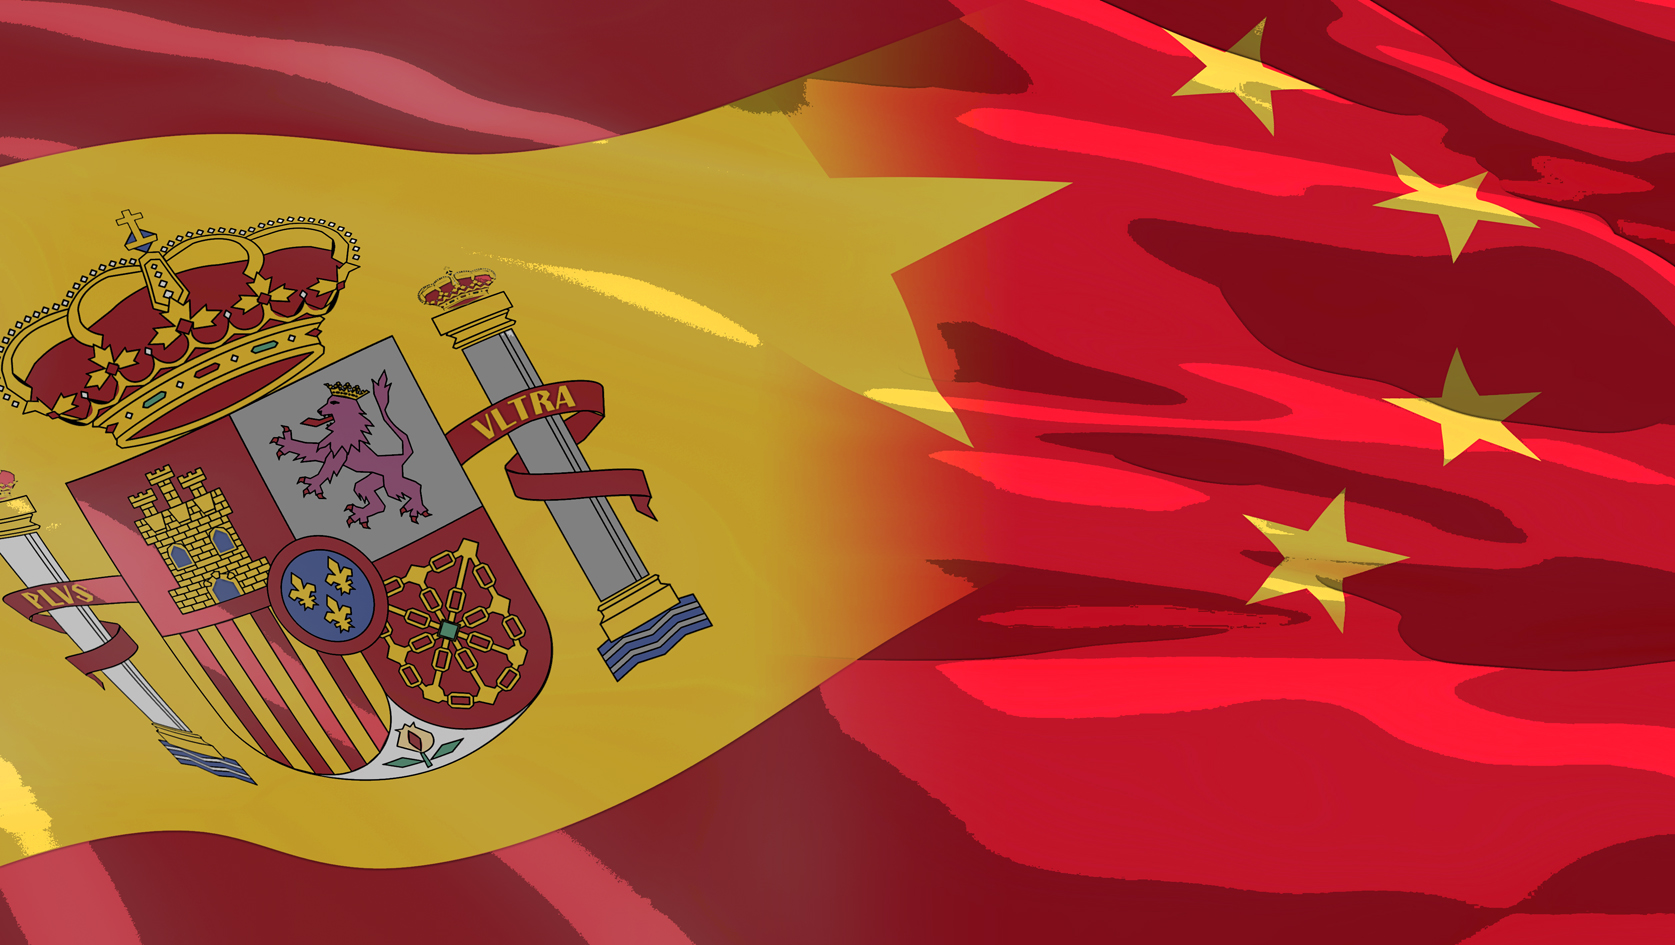 Official Flag Of Spain 2014 | www.imgkid.com - The Image Kid Has It!